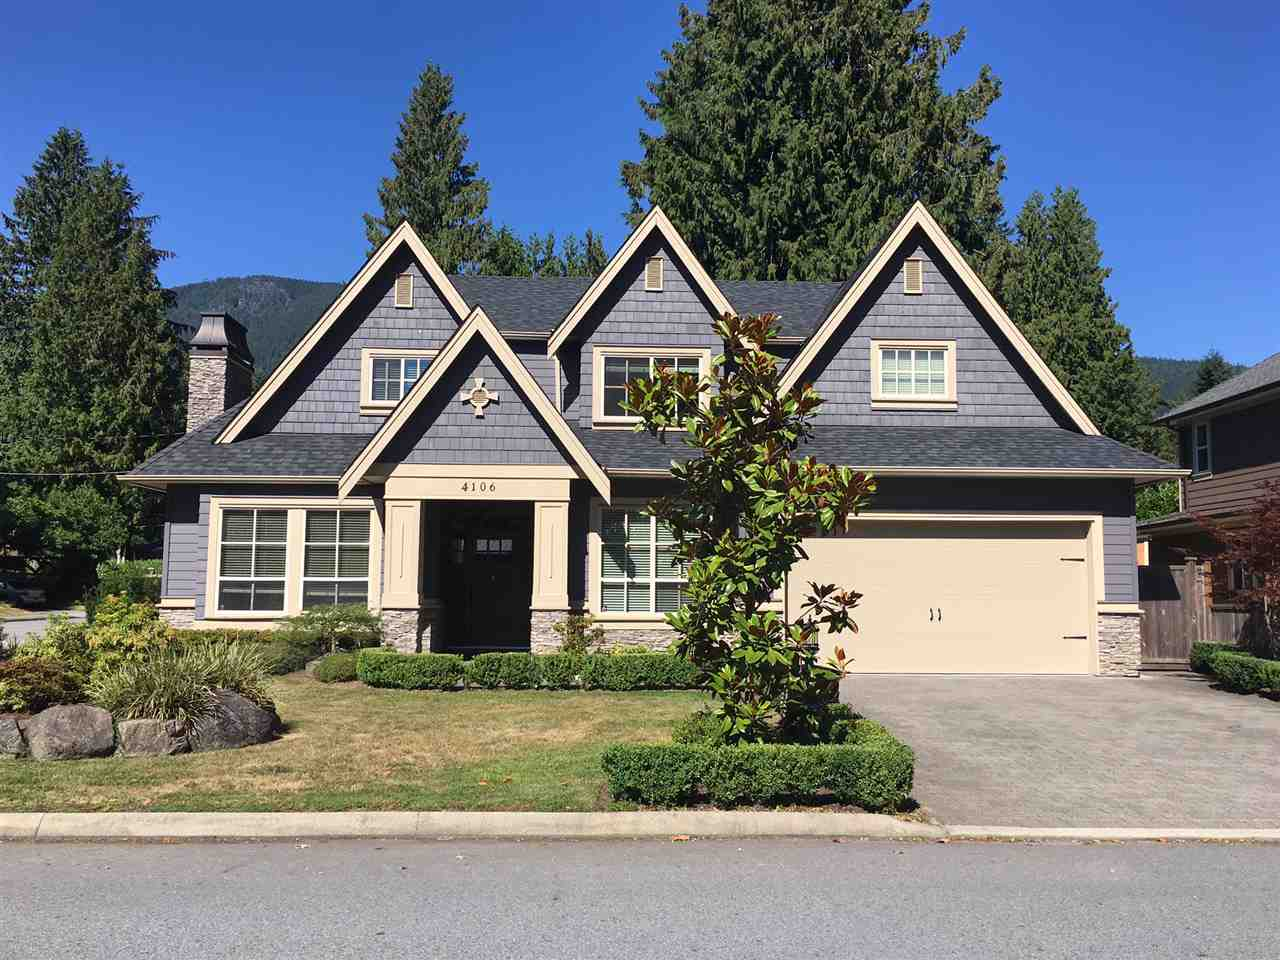 Detached at 4106 GRACE CRESCENT, North Vancouver, British Columbia. Image 1